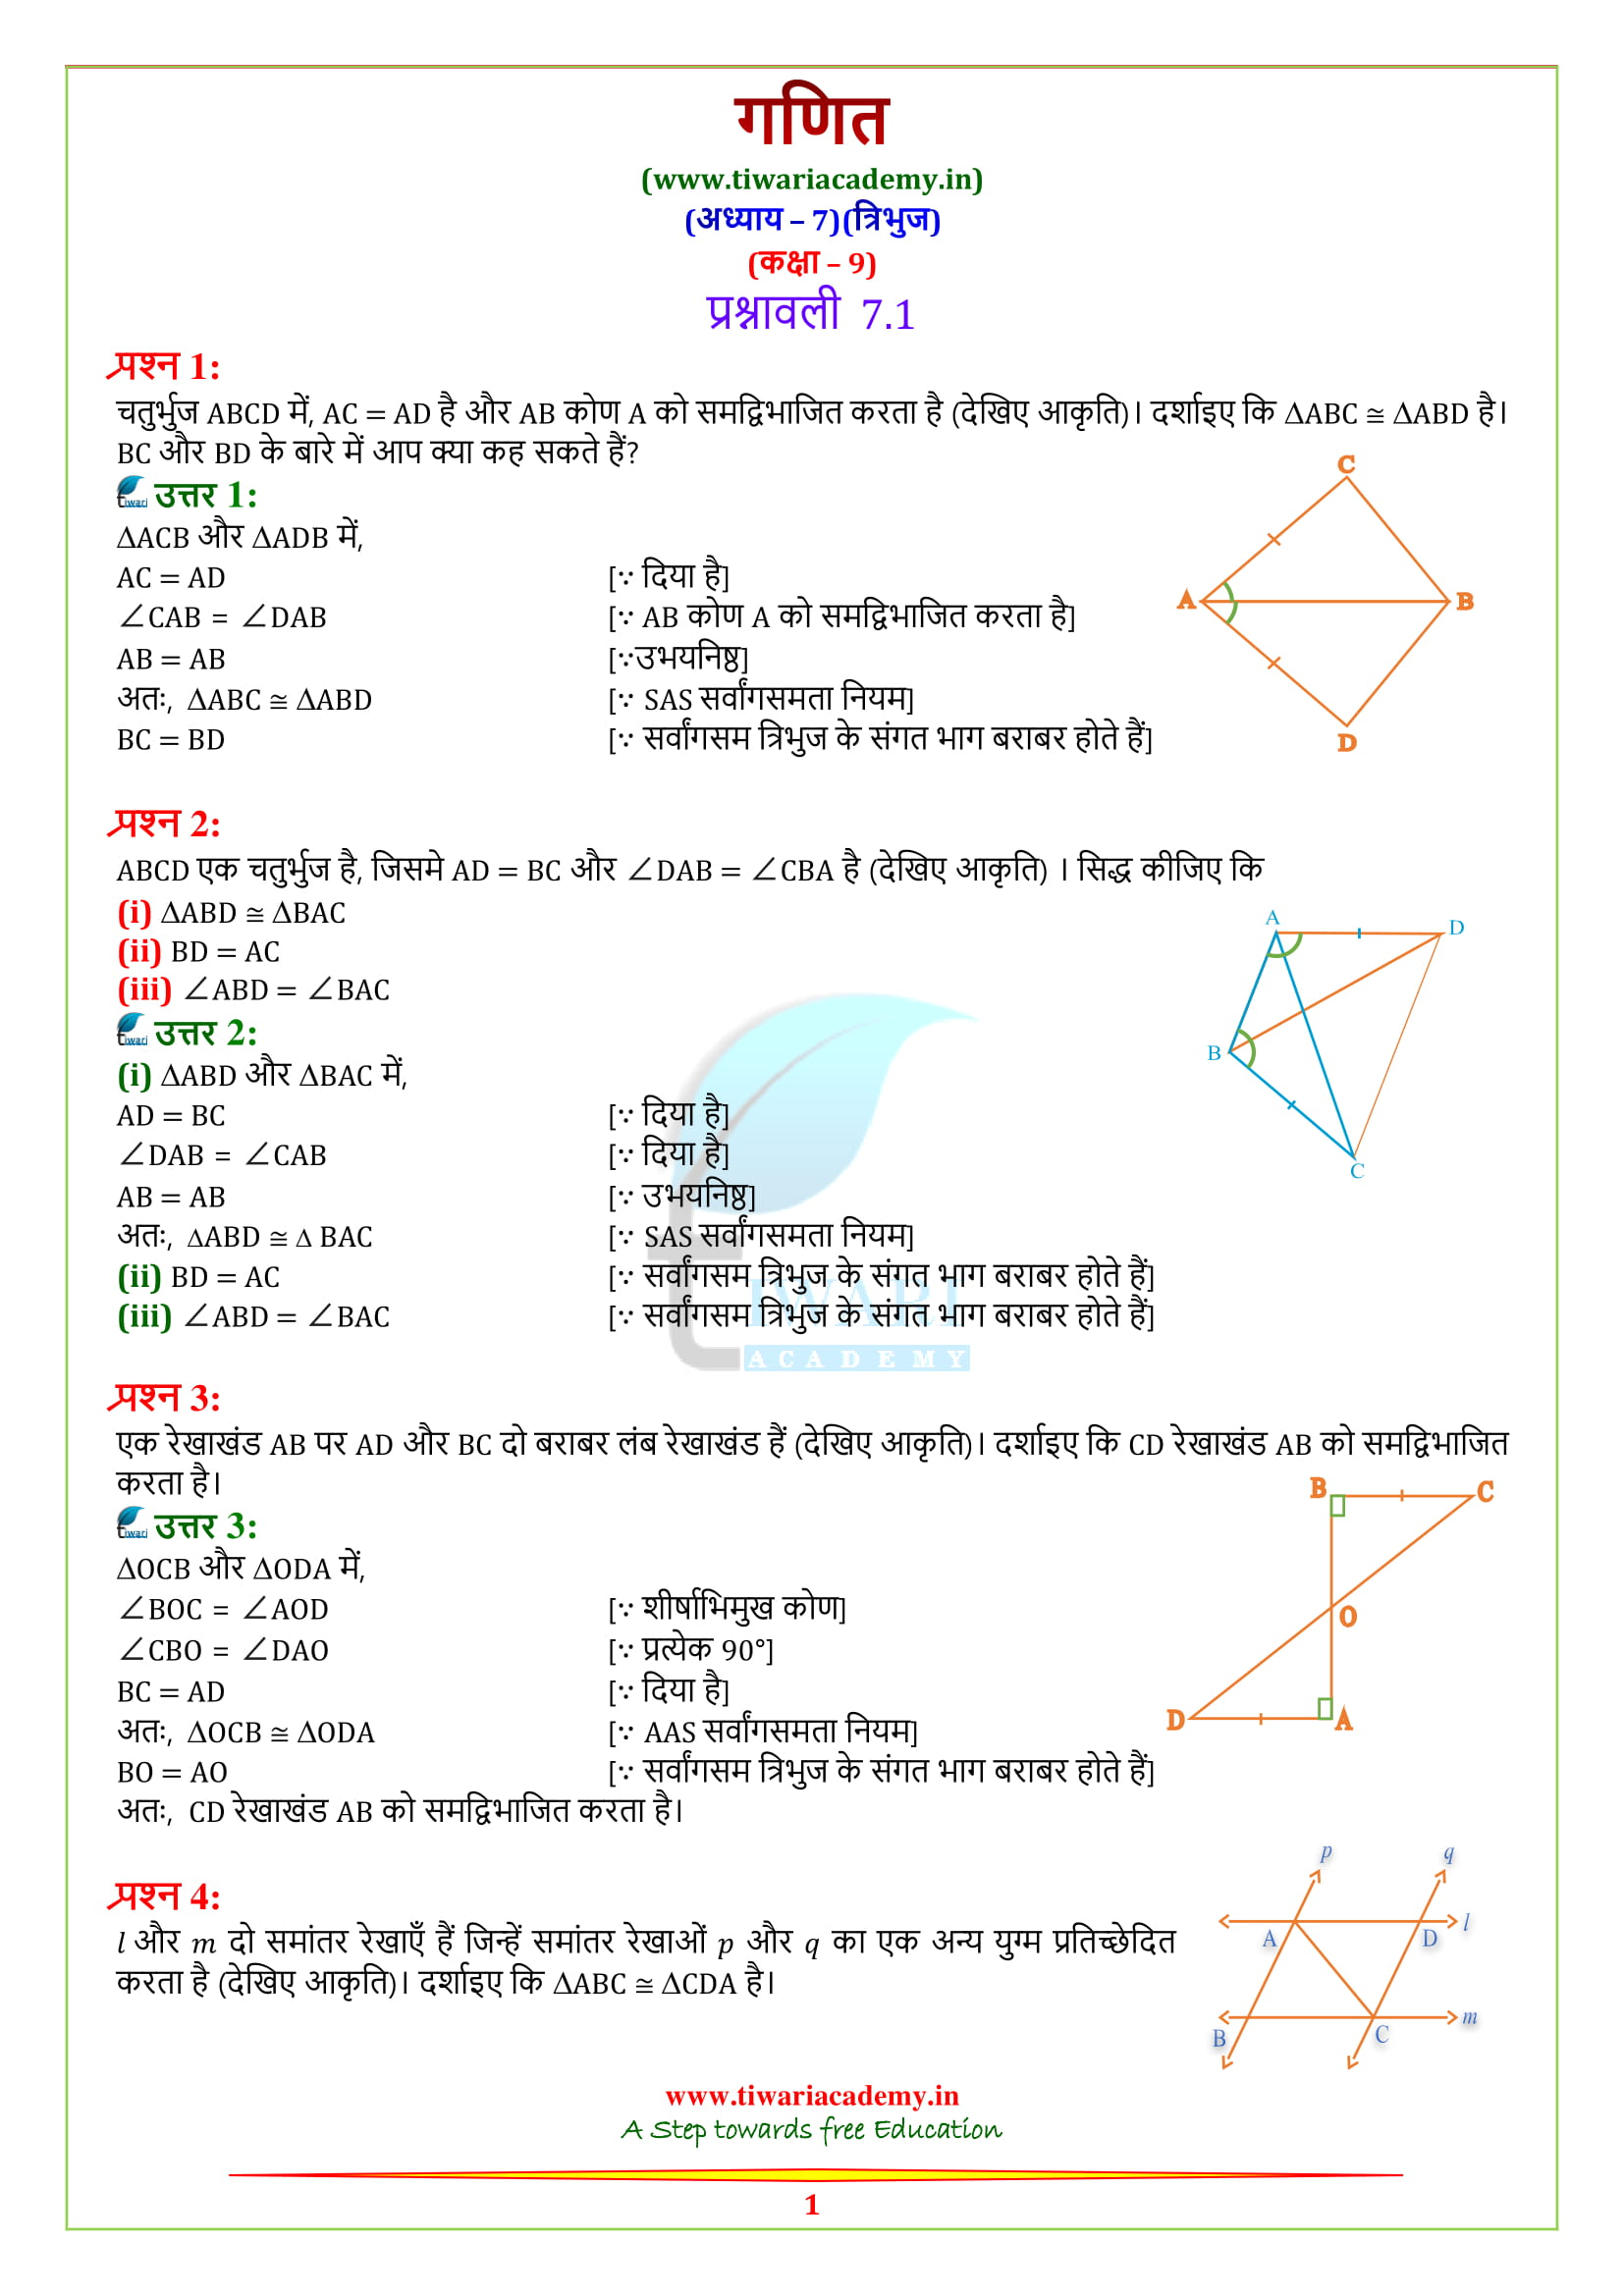 9 Maths Exercise 7.1 Solutions in hindi medium